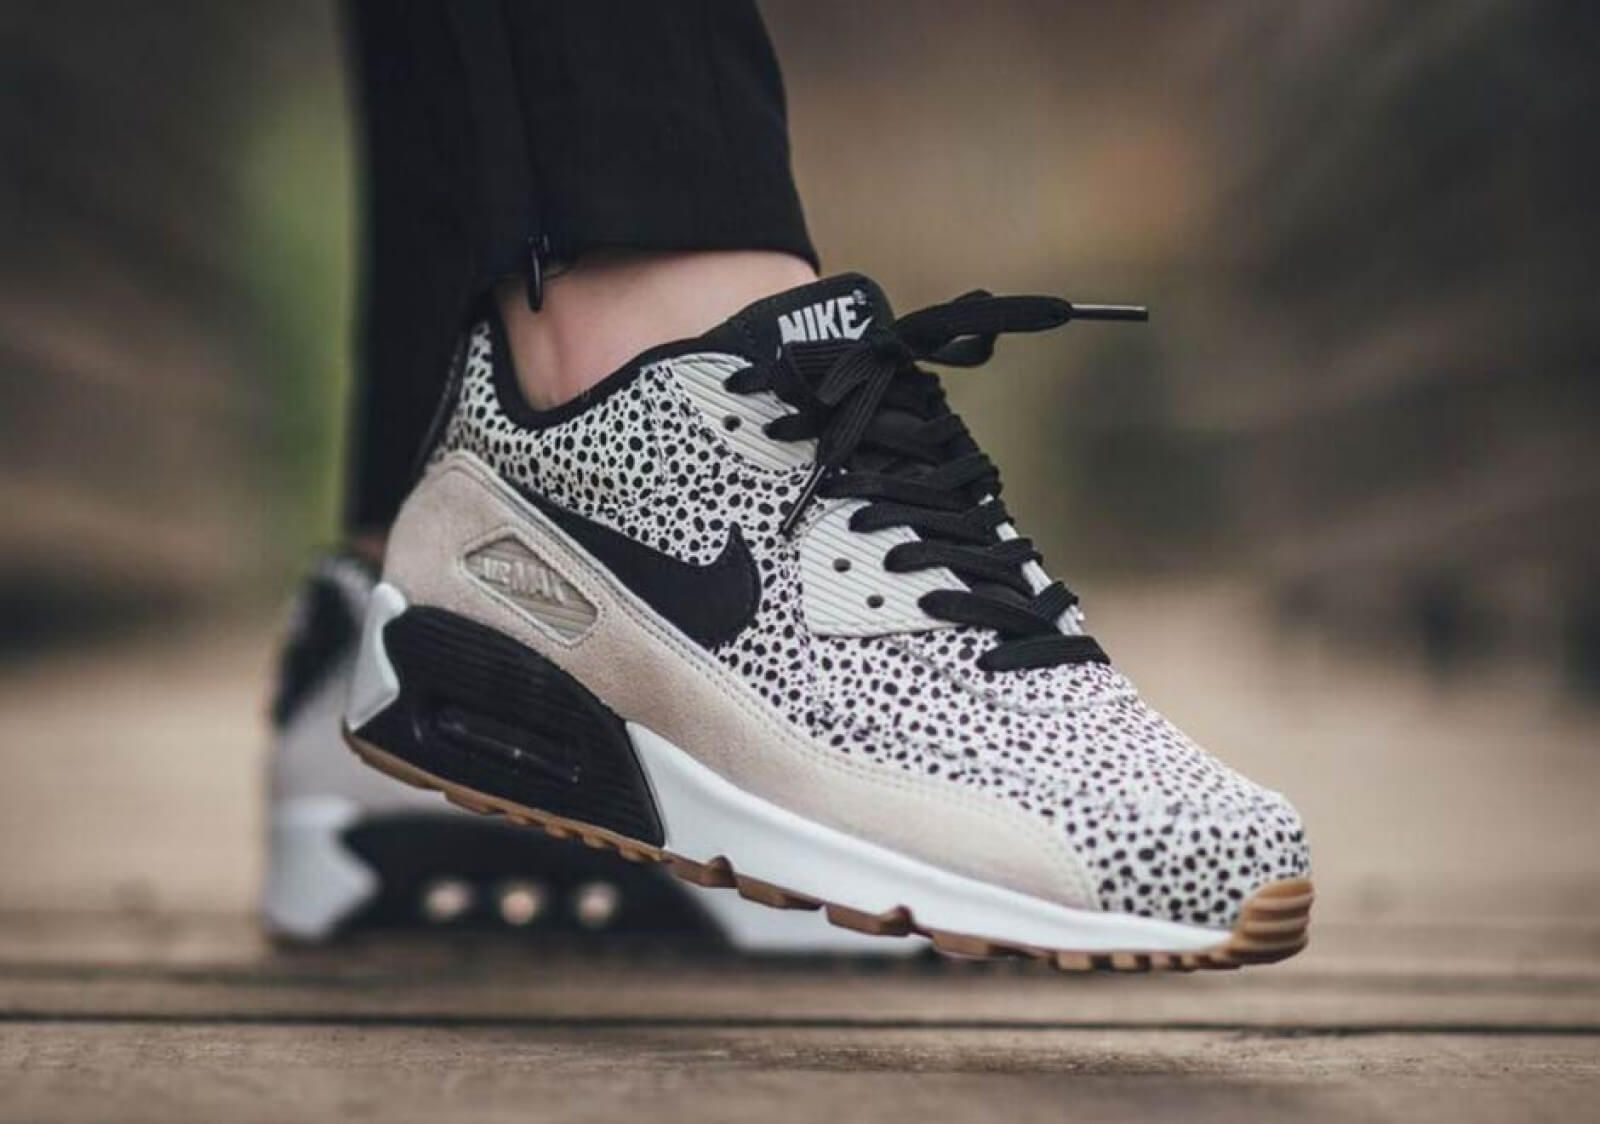 online retailer 02e4a 633aa Nike Wmns Air Max 90 PRM White Black-Gum Light Brown - 443817-102